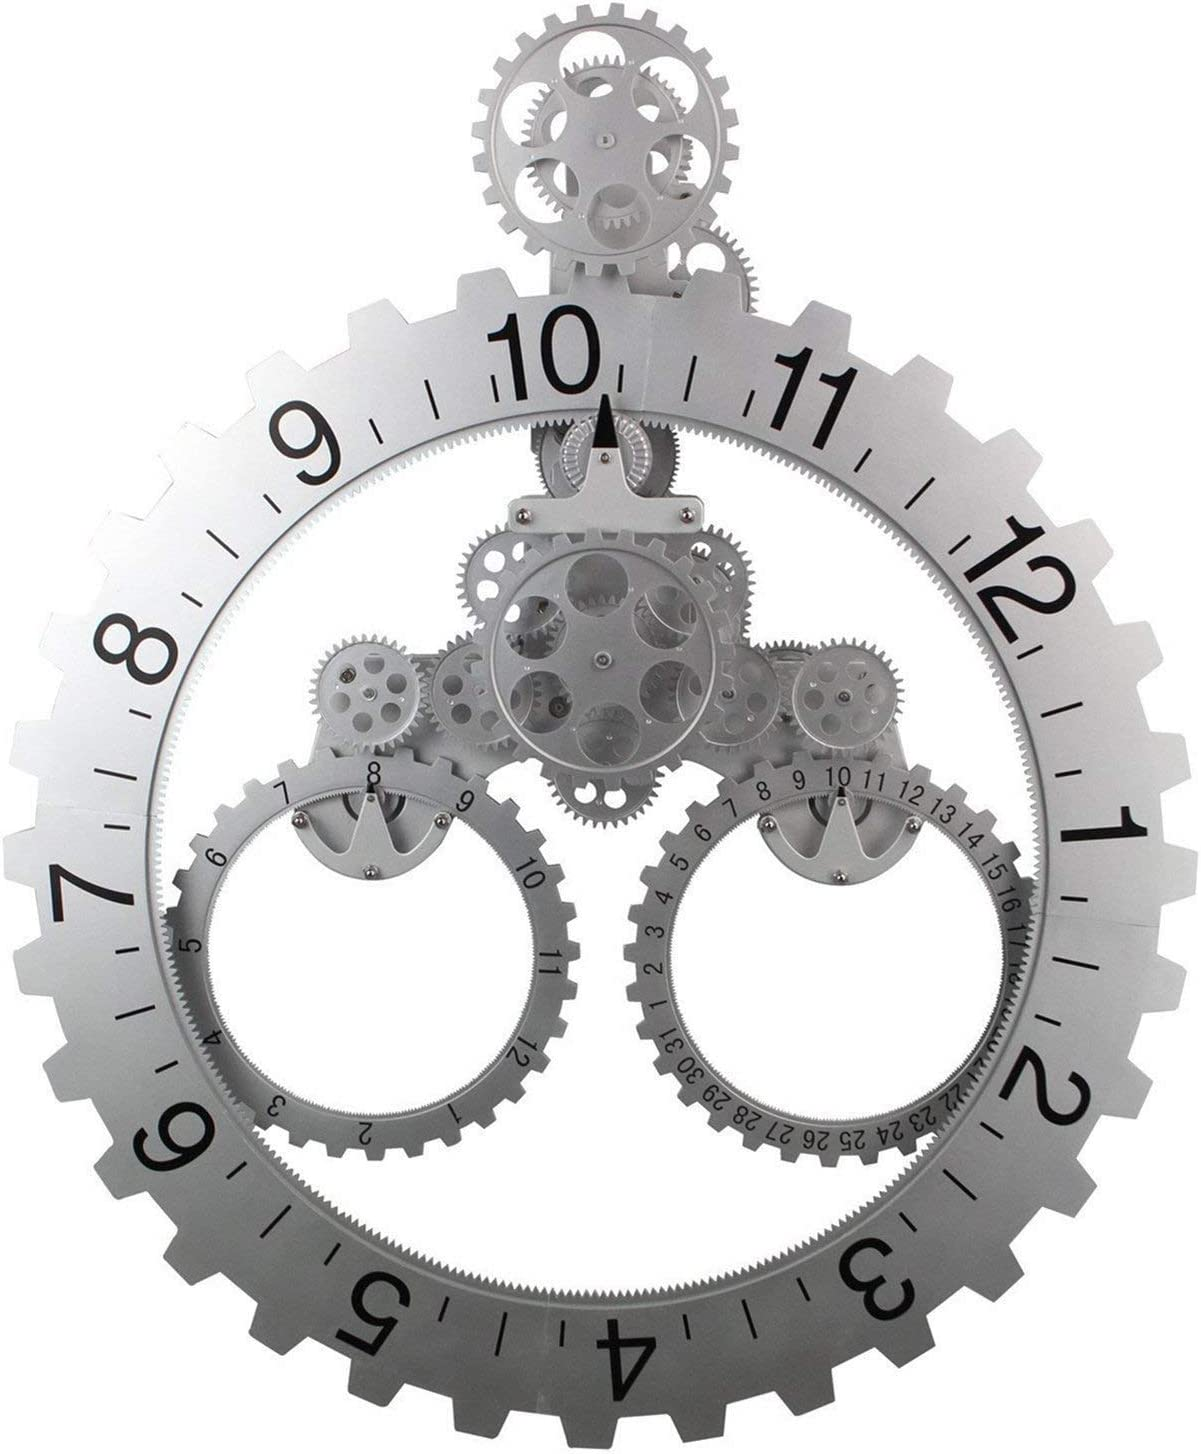 Gear Wall Clock with Moving Gears, Smart 3D, Quiet, Silent, Noiseless, Decorative with Premium Plastic Moving Clock for Office, Home, Kitchen, Bar, Modern Living Room Decor (Silver Sawtooth)